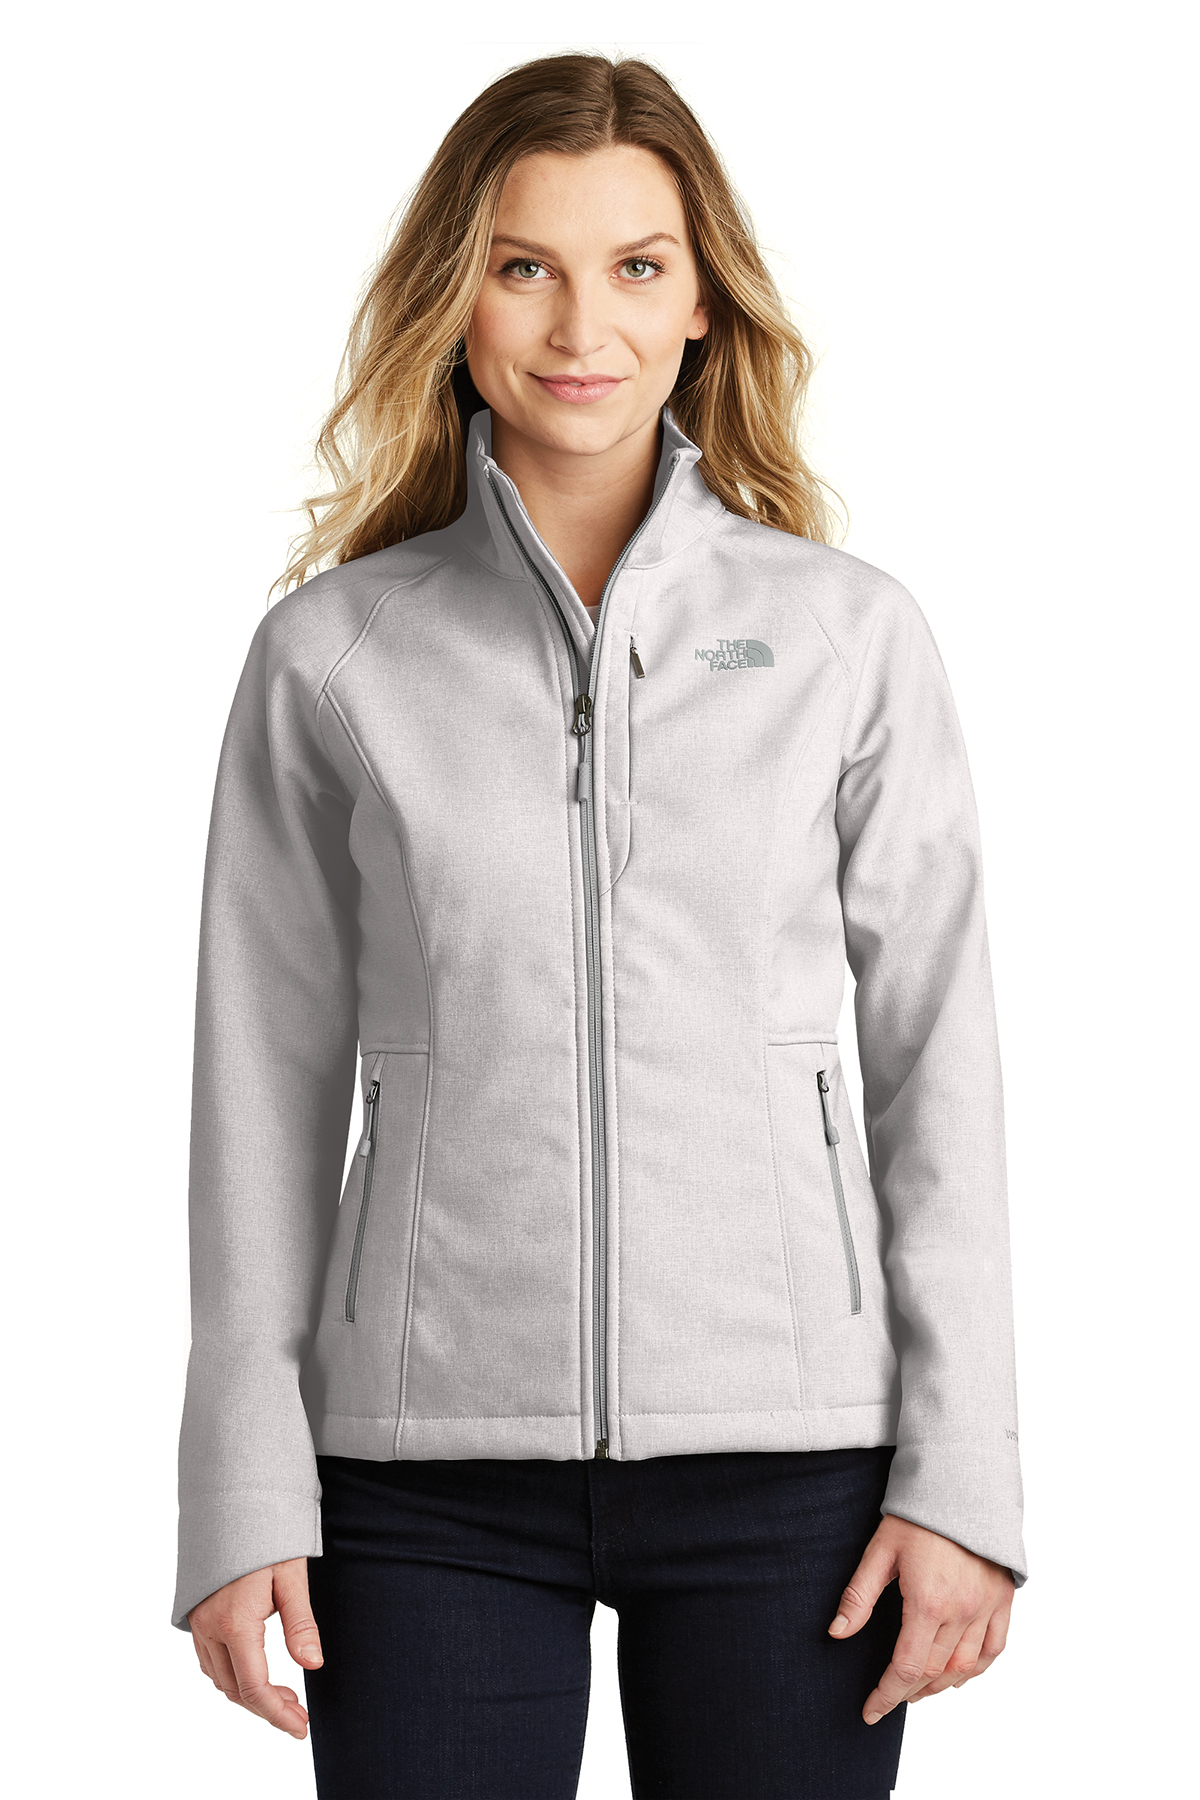 bf44f0738 The North Face® Ladies Apex Barrier Soft Shell Jacket | Ladies/Women ...